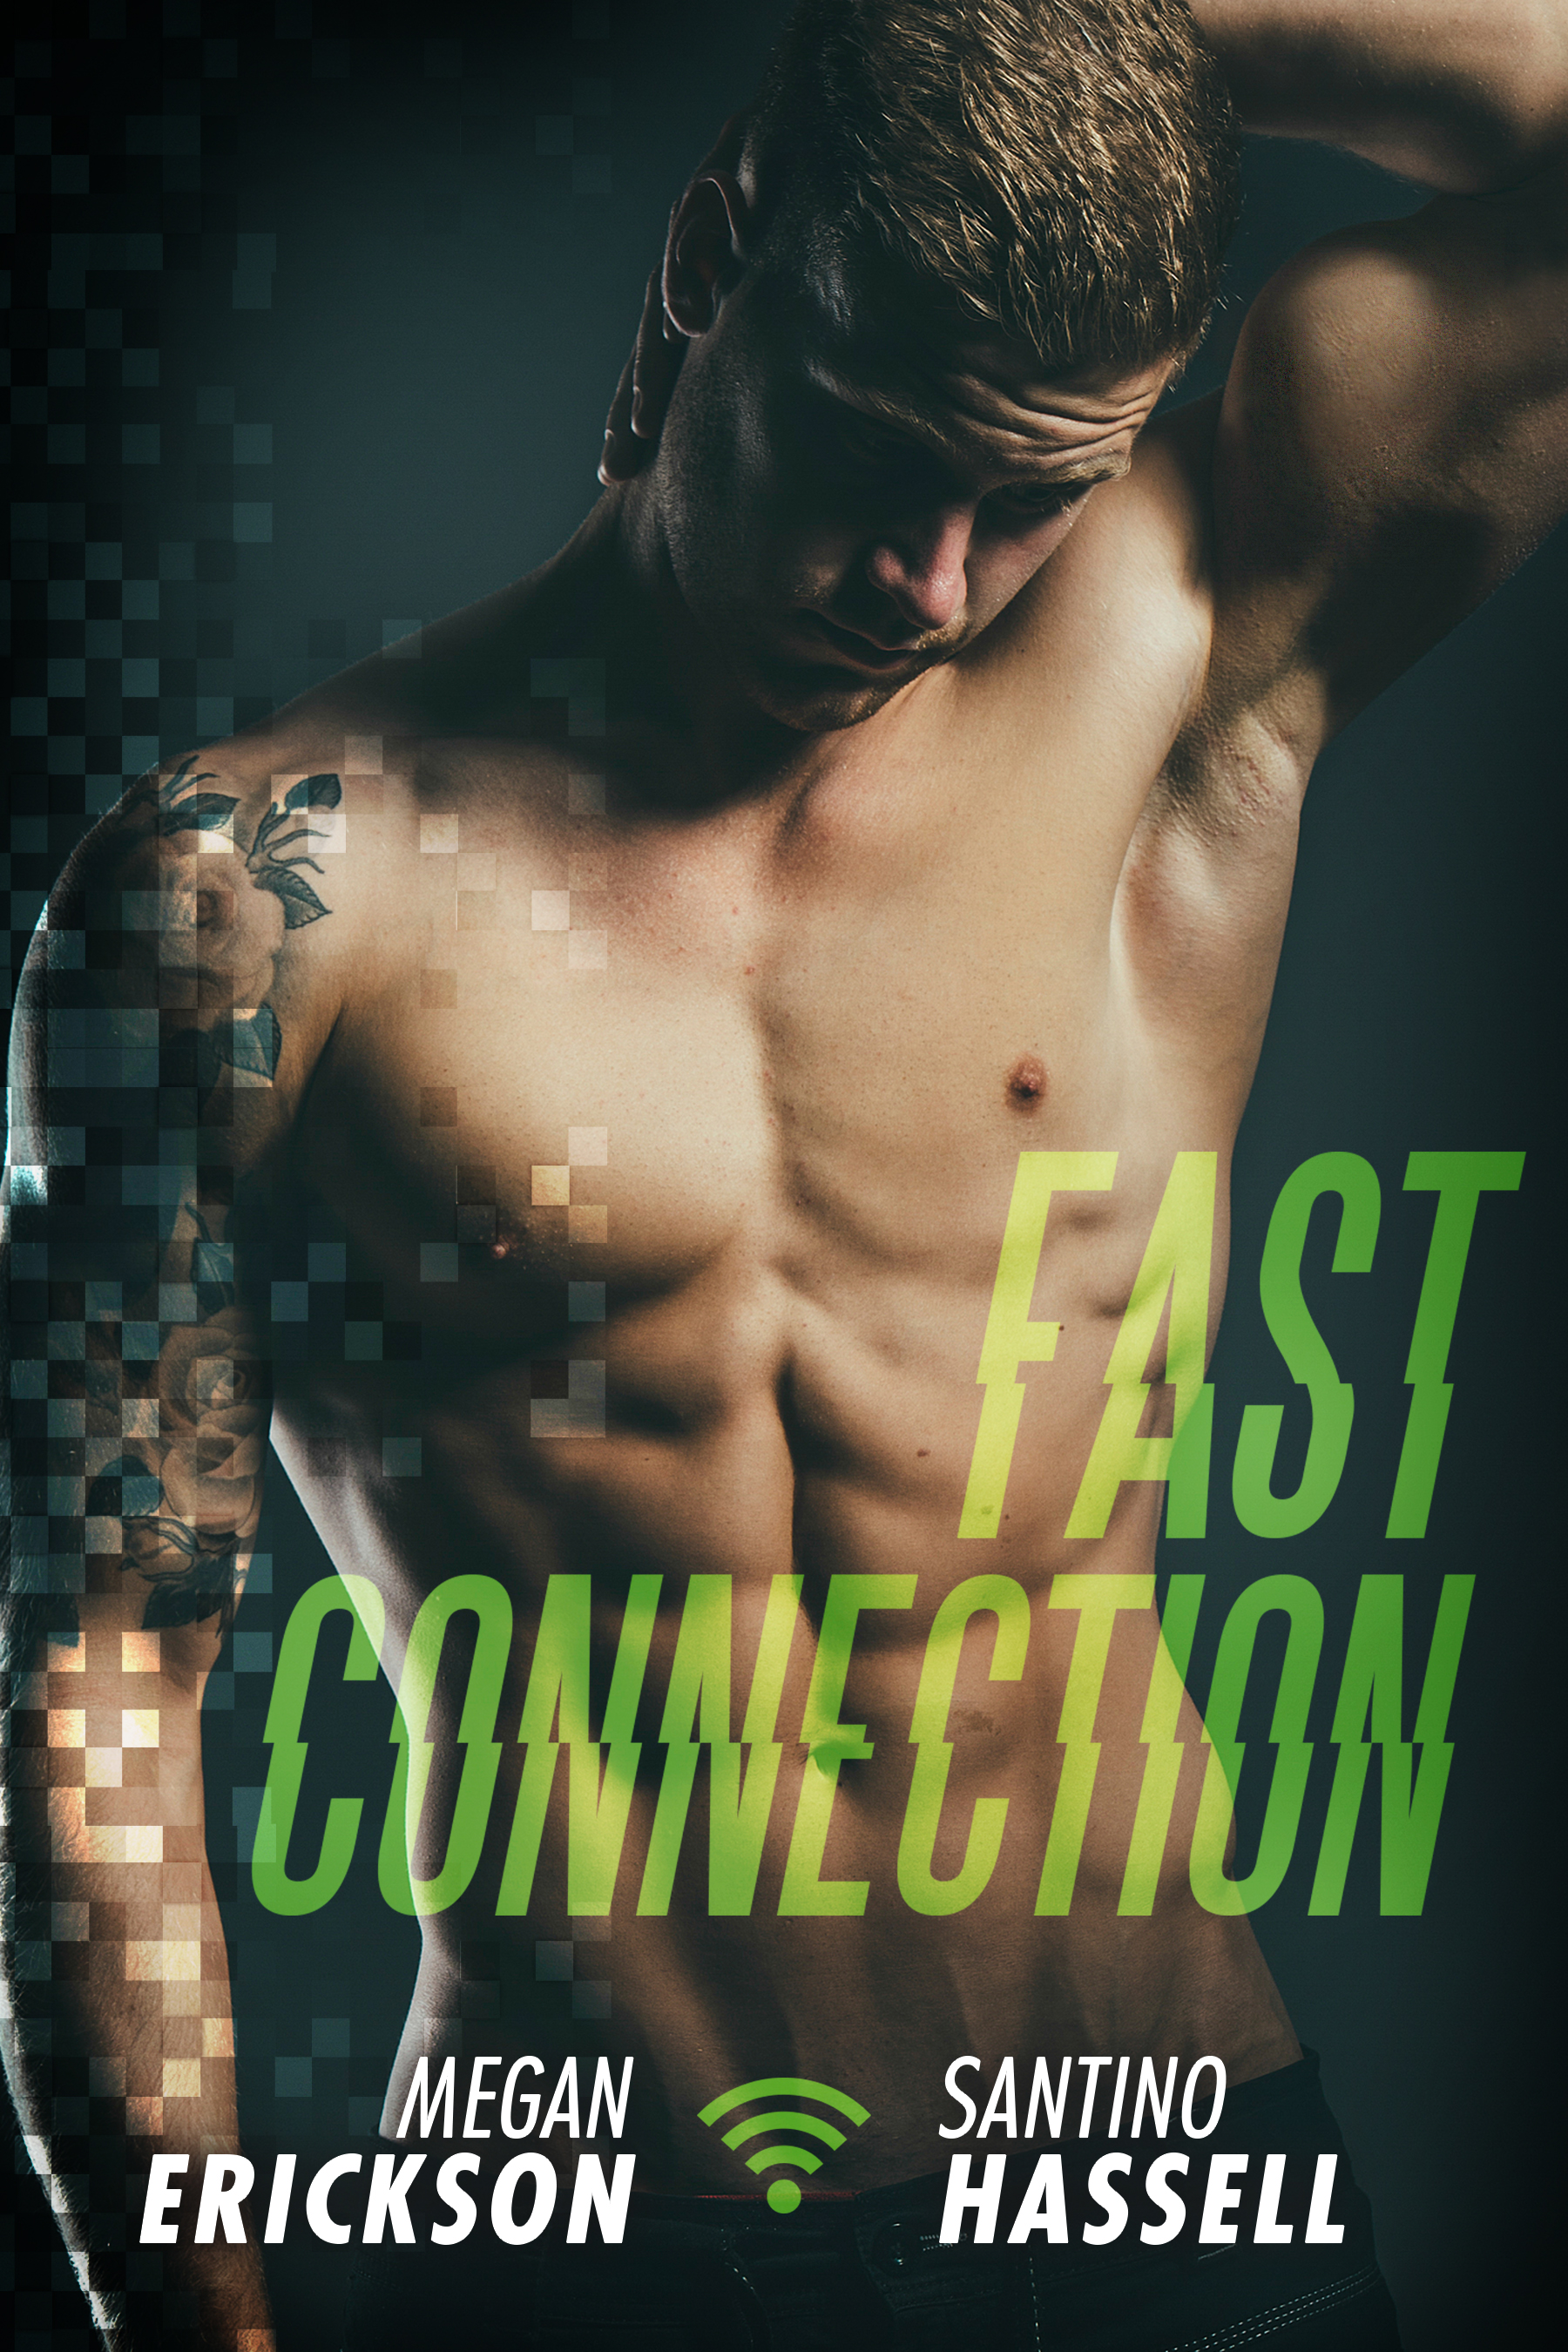 Cover - Fast Connection by Megan Erickson and Santino Hassell